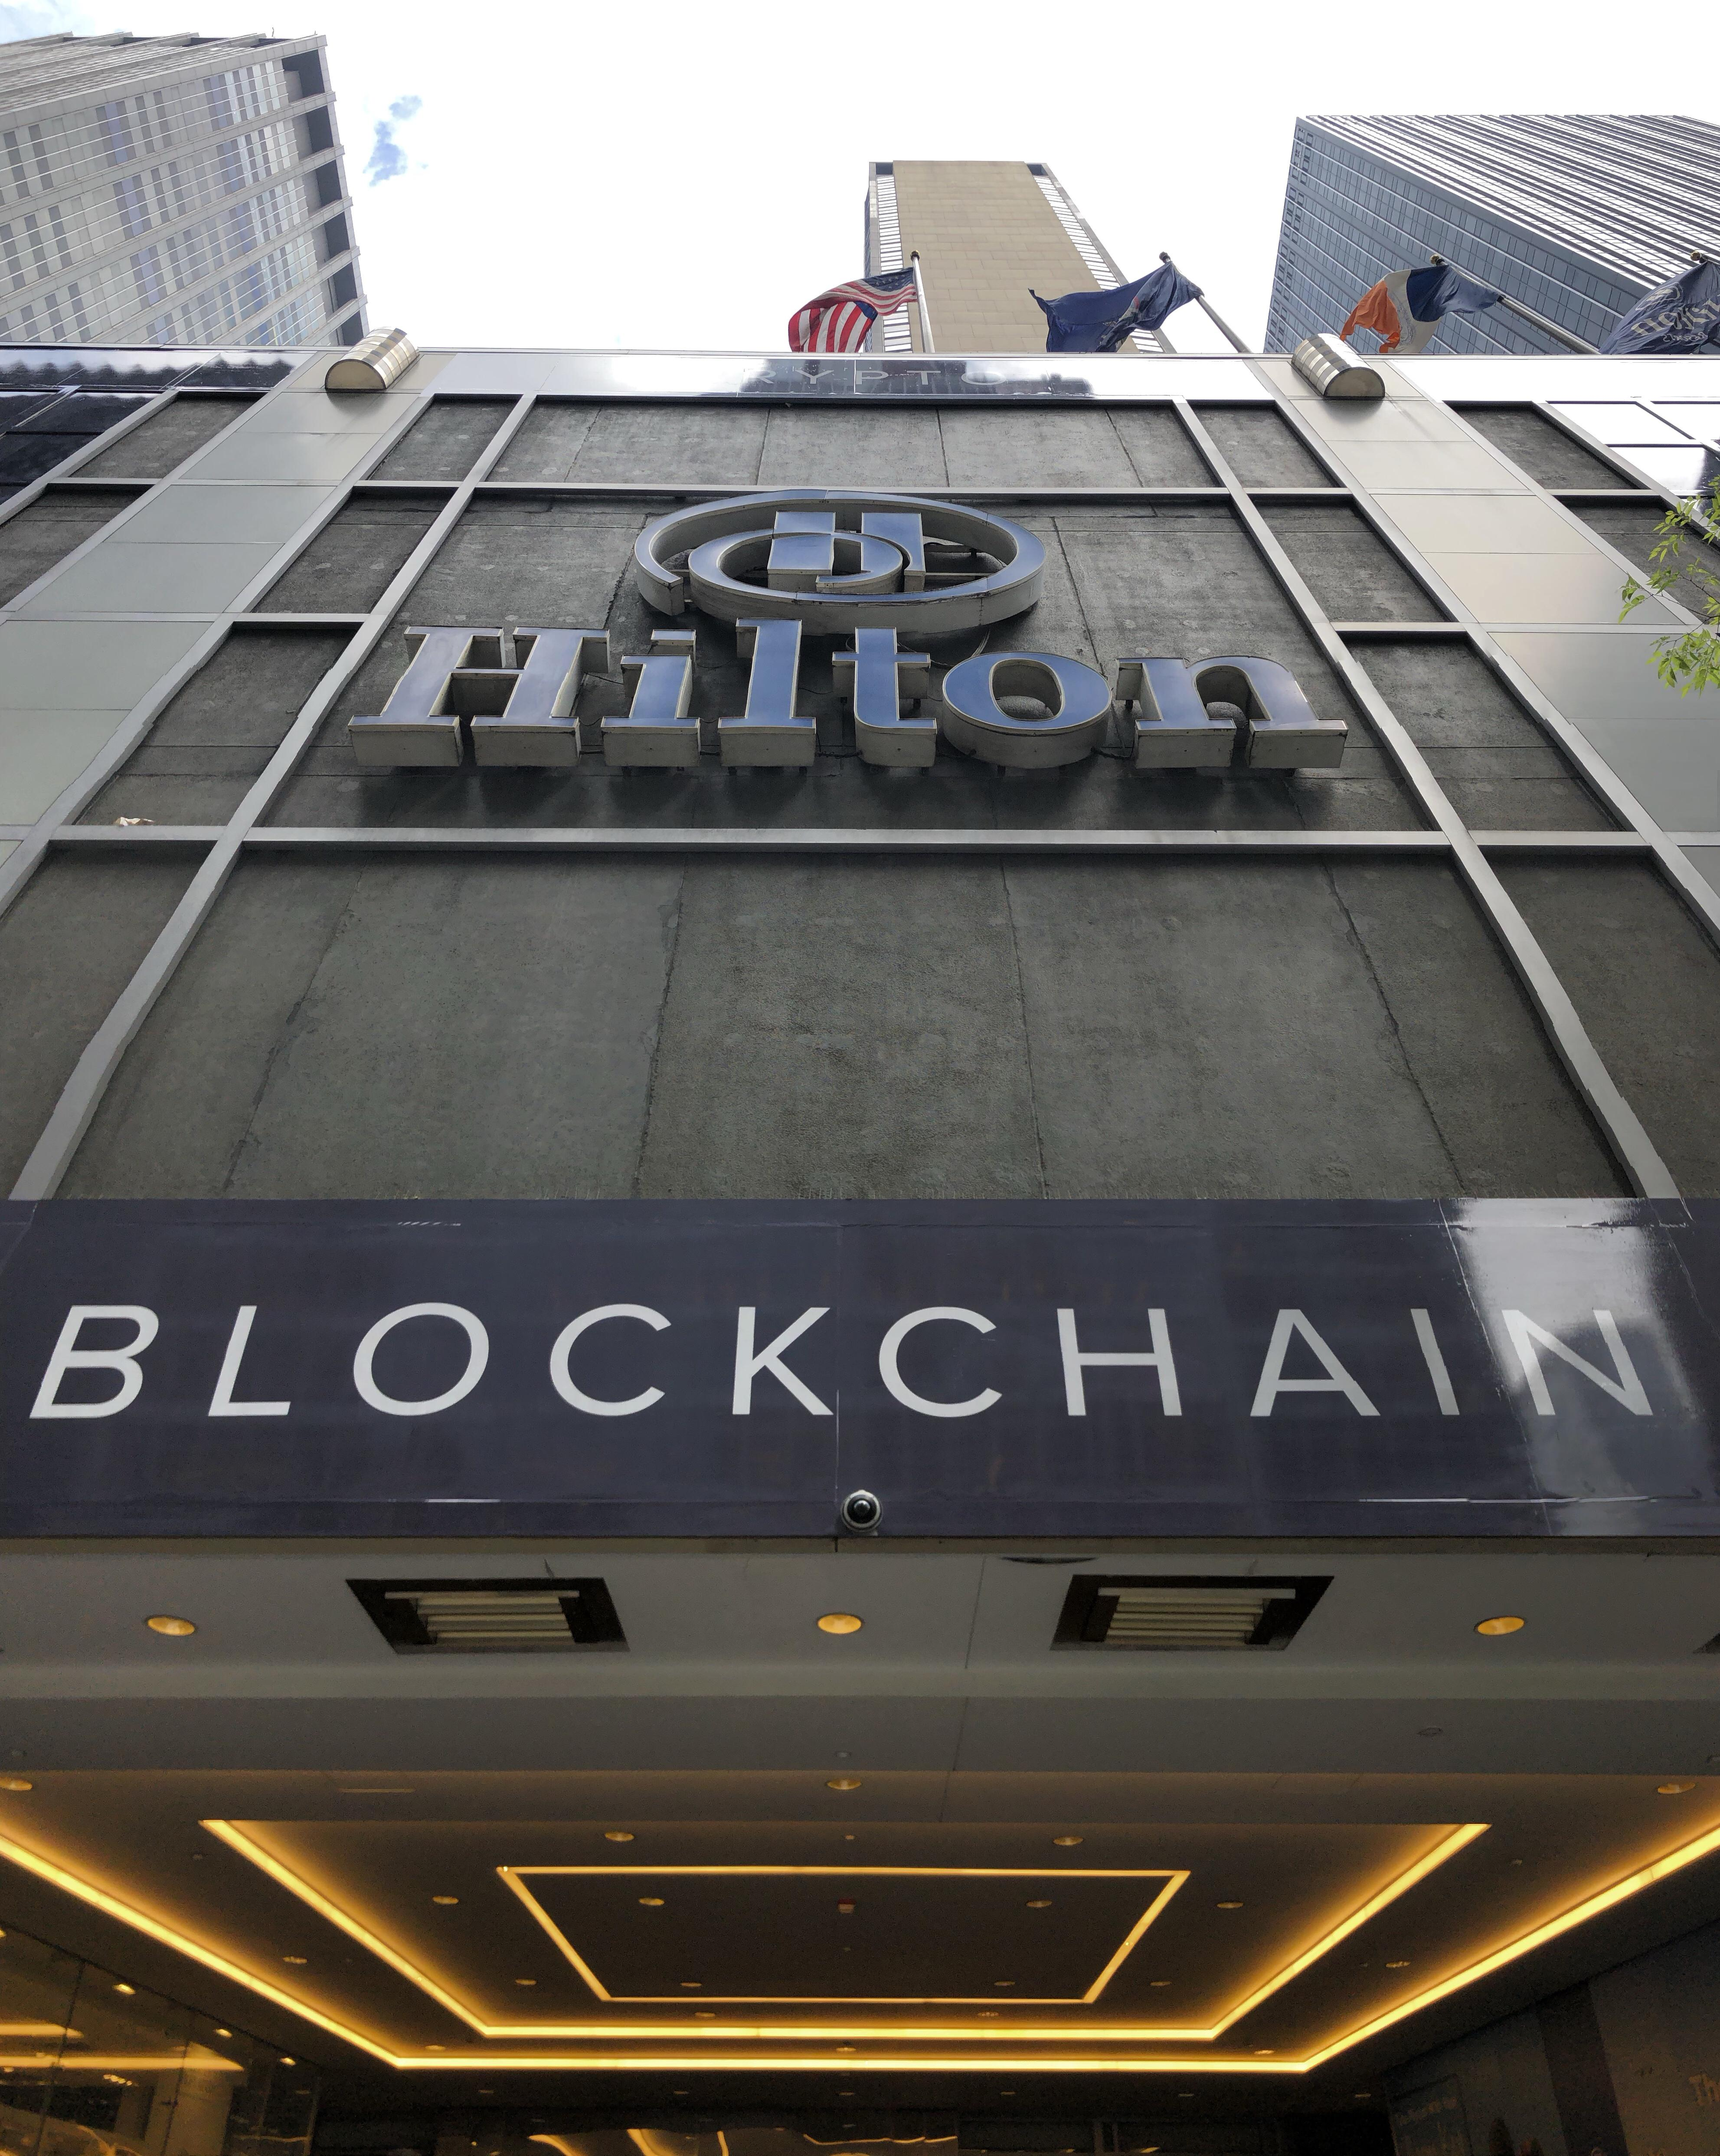 New York runs Blockchain